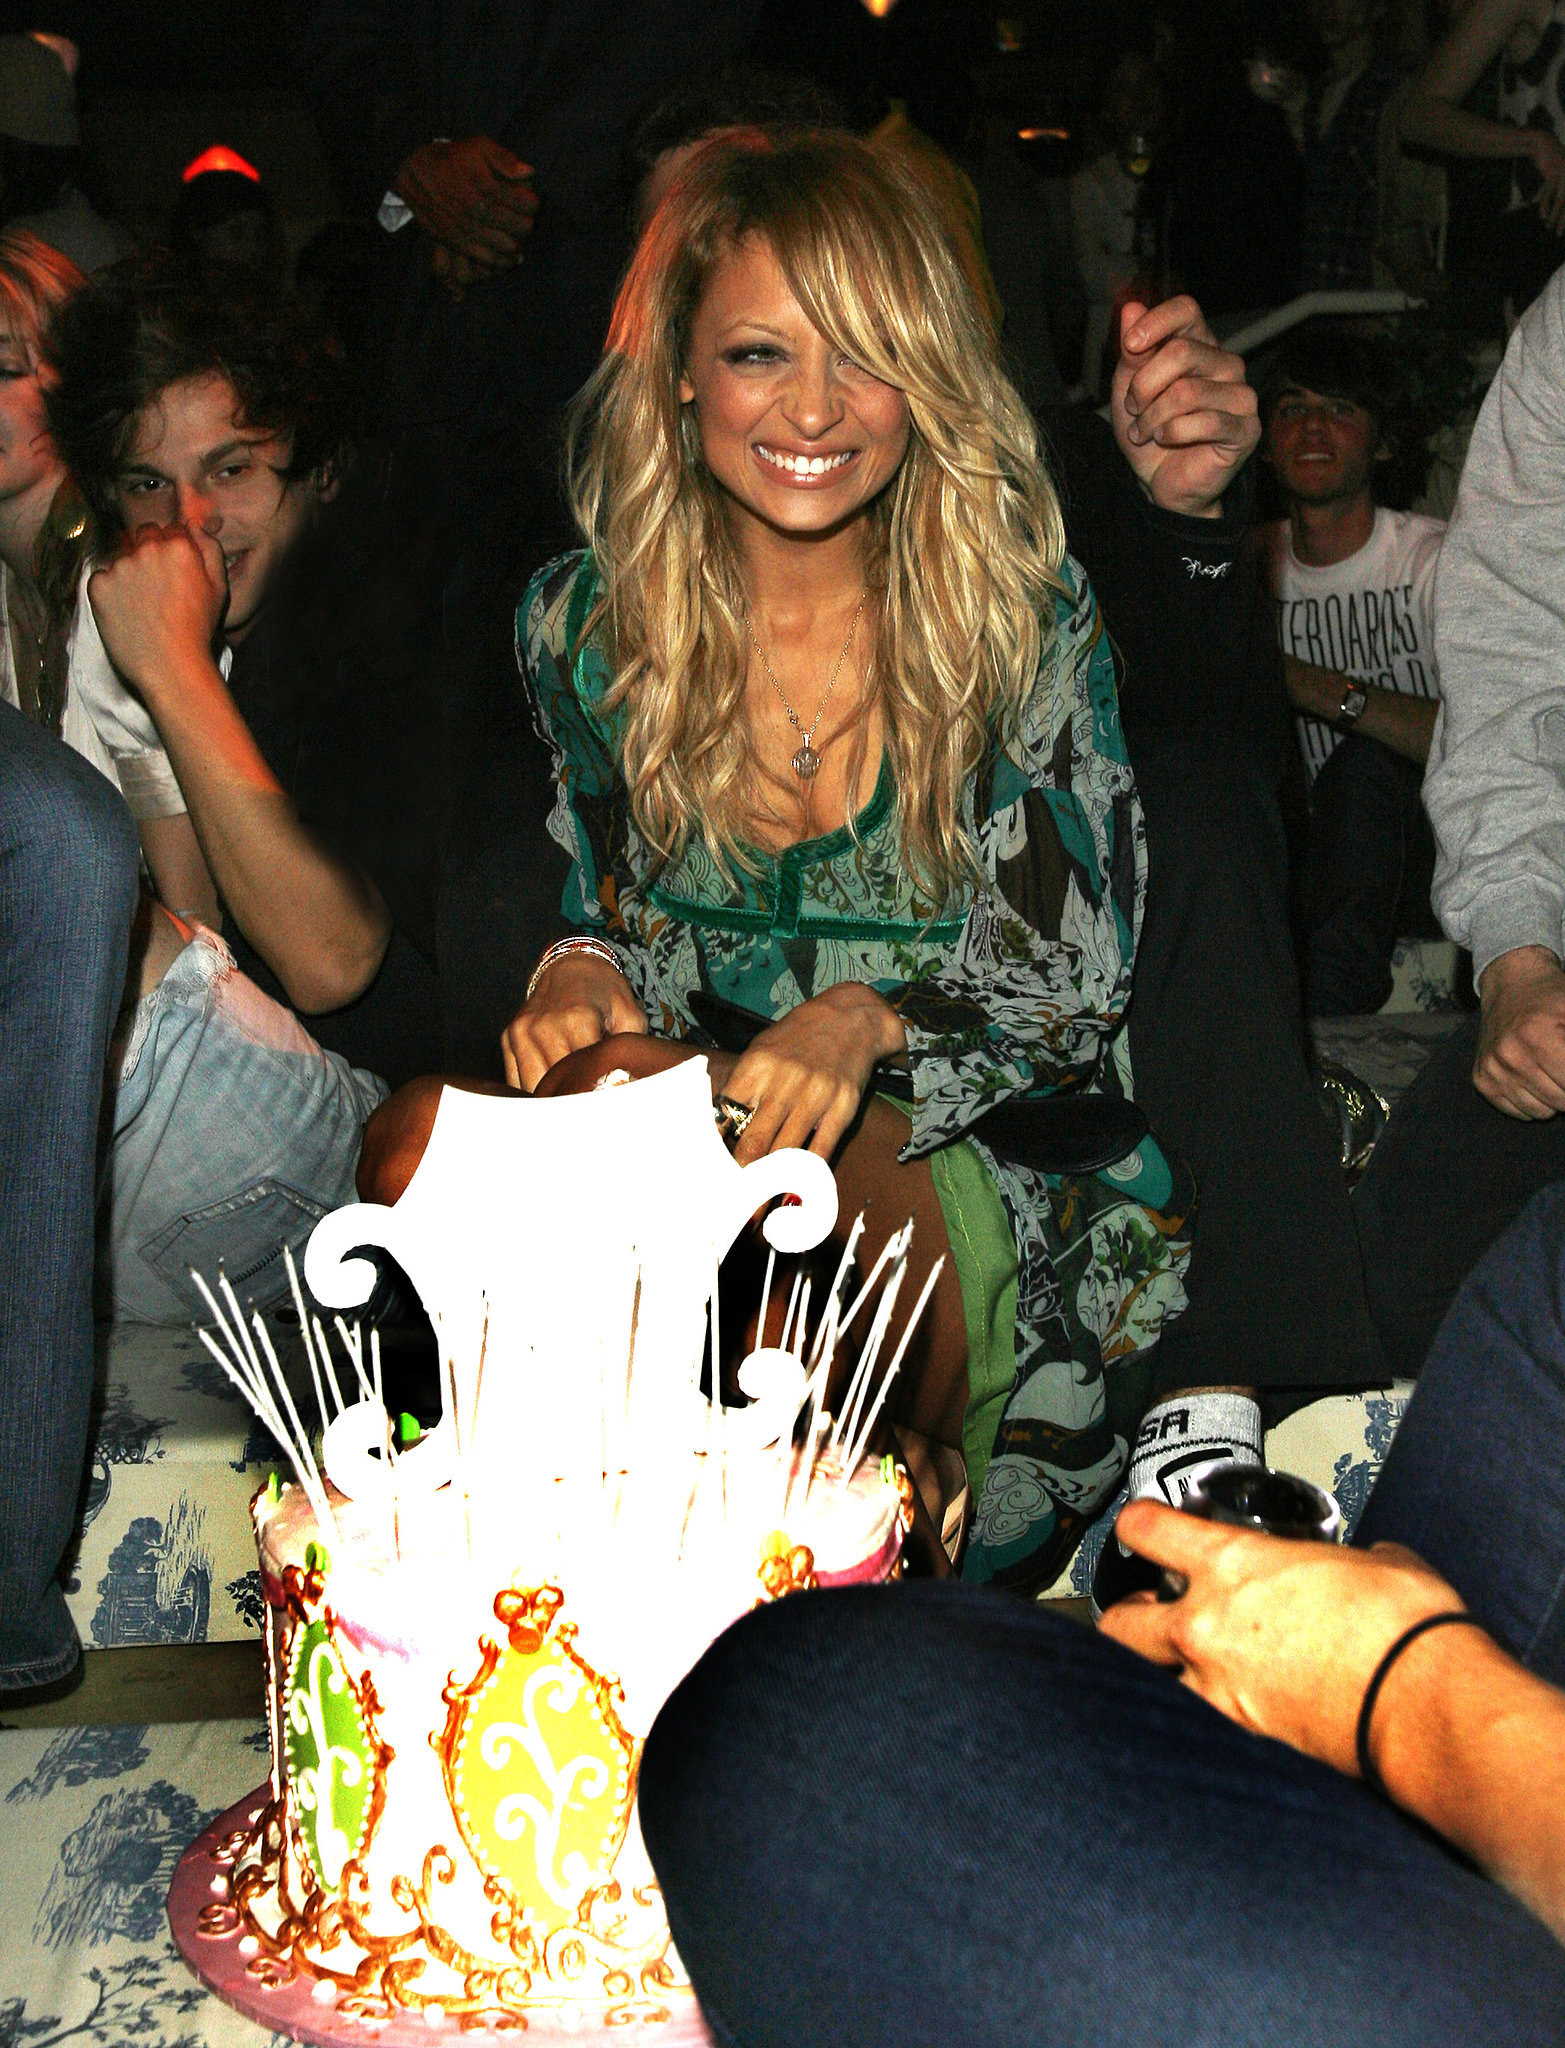 Nicole was surprised with a birthday cake of her own during a Teen Vogue Young Hollywood party in LA in September 2006.